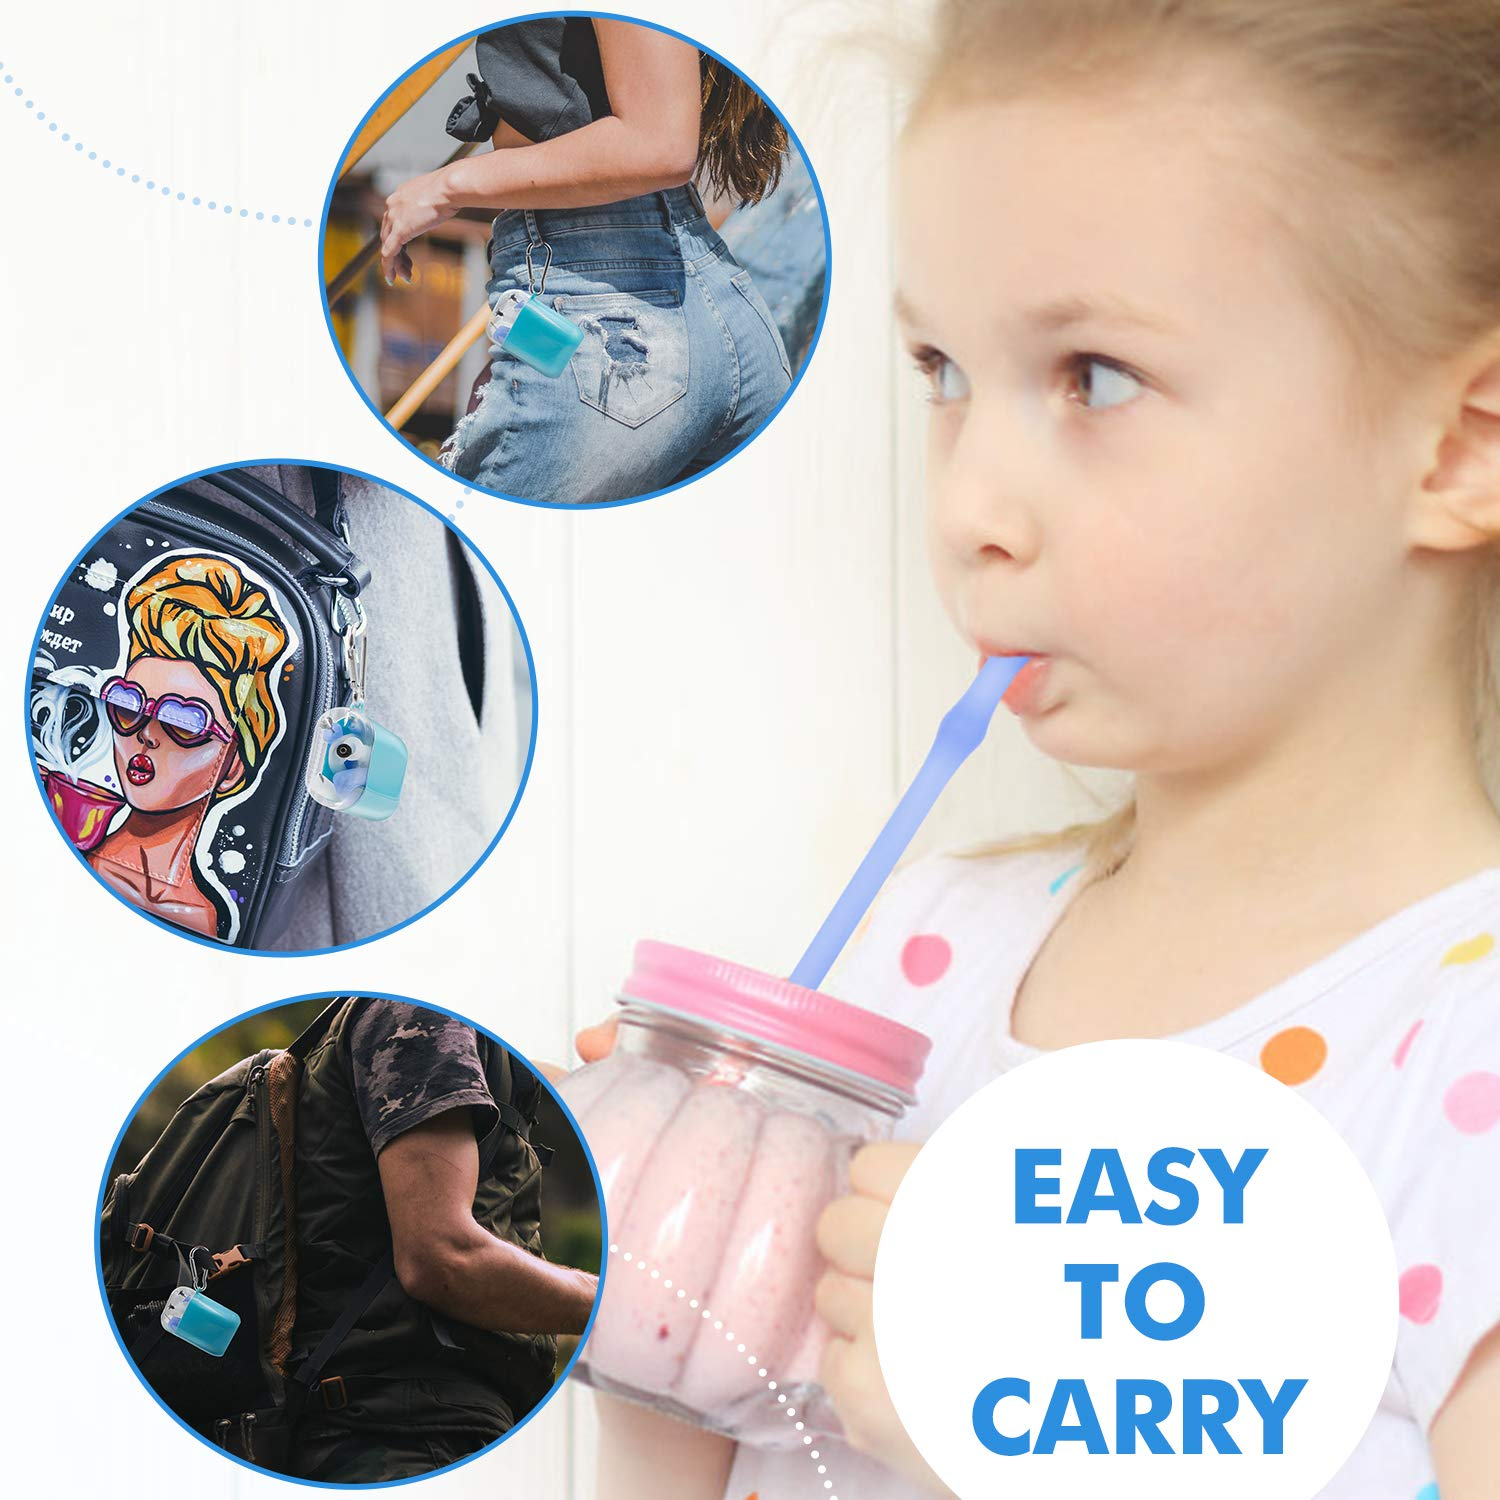 Reusable Collapsible Straws Folding Silicone Straws Food-Grade Drinking Straws - 2 Sets(4 Straws) (Blue)